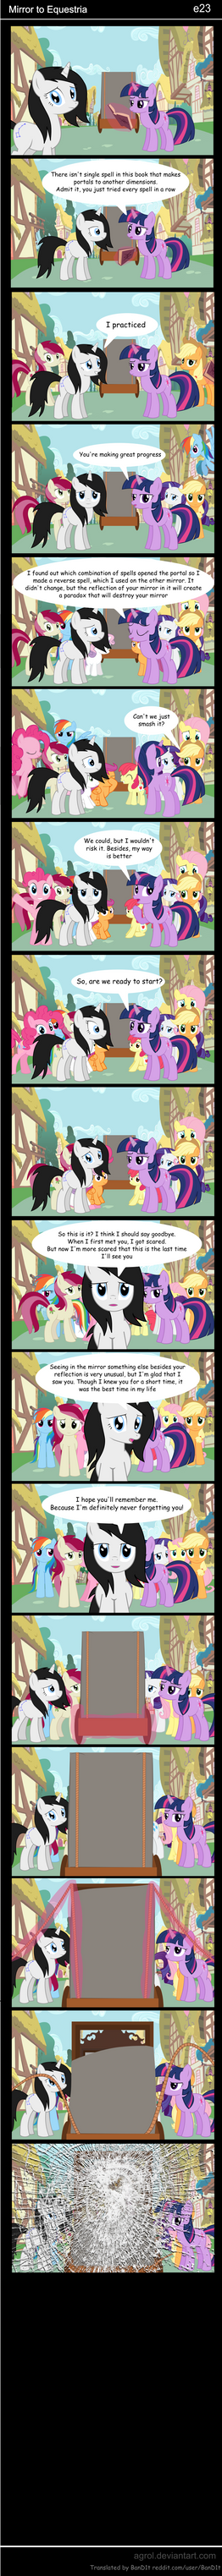 Mirror to Equestria e23 by Agrol